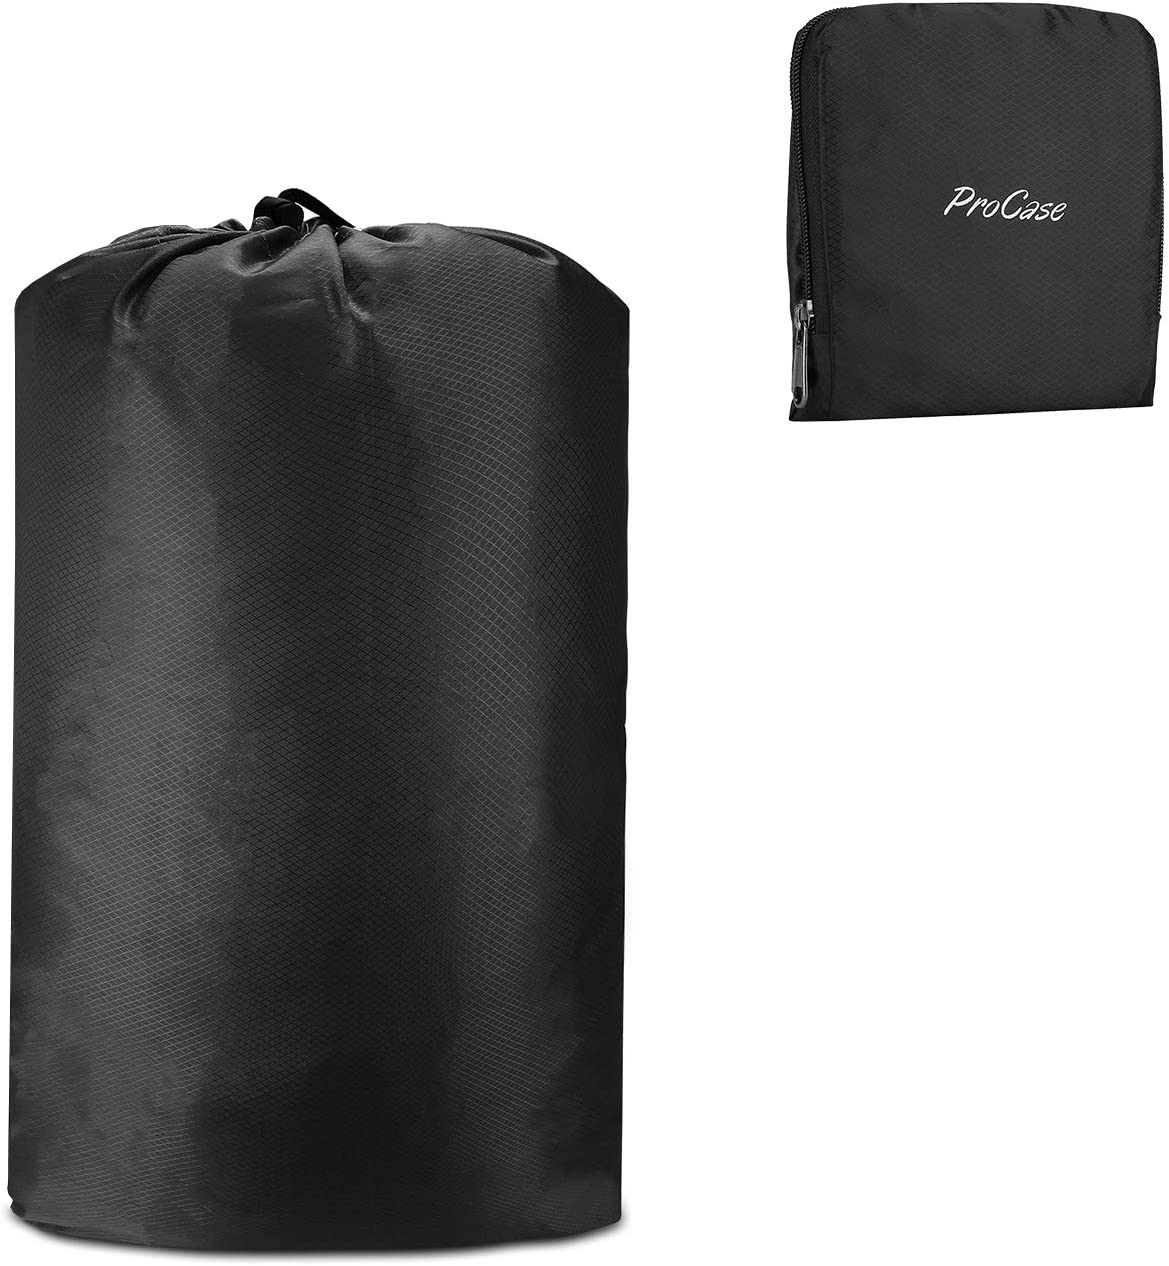 ProCase Travel Laundry Bag, Foldable Compressible Storage Pouch Sports Gym Laundry Bag Packing Organizer Bag for Dirty Clothes During Trip –Black